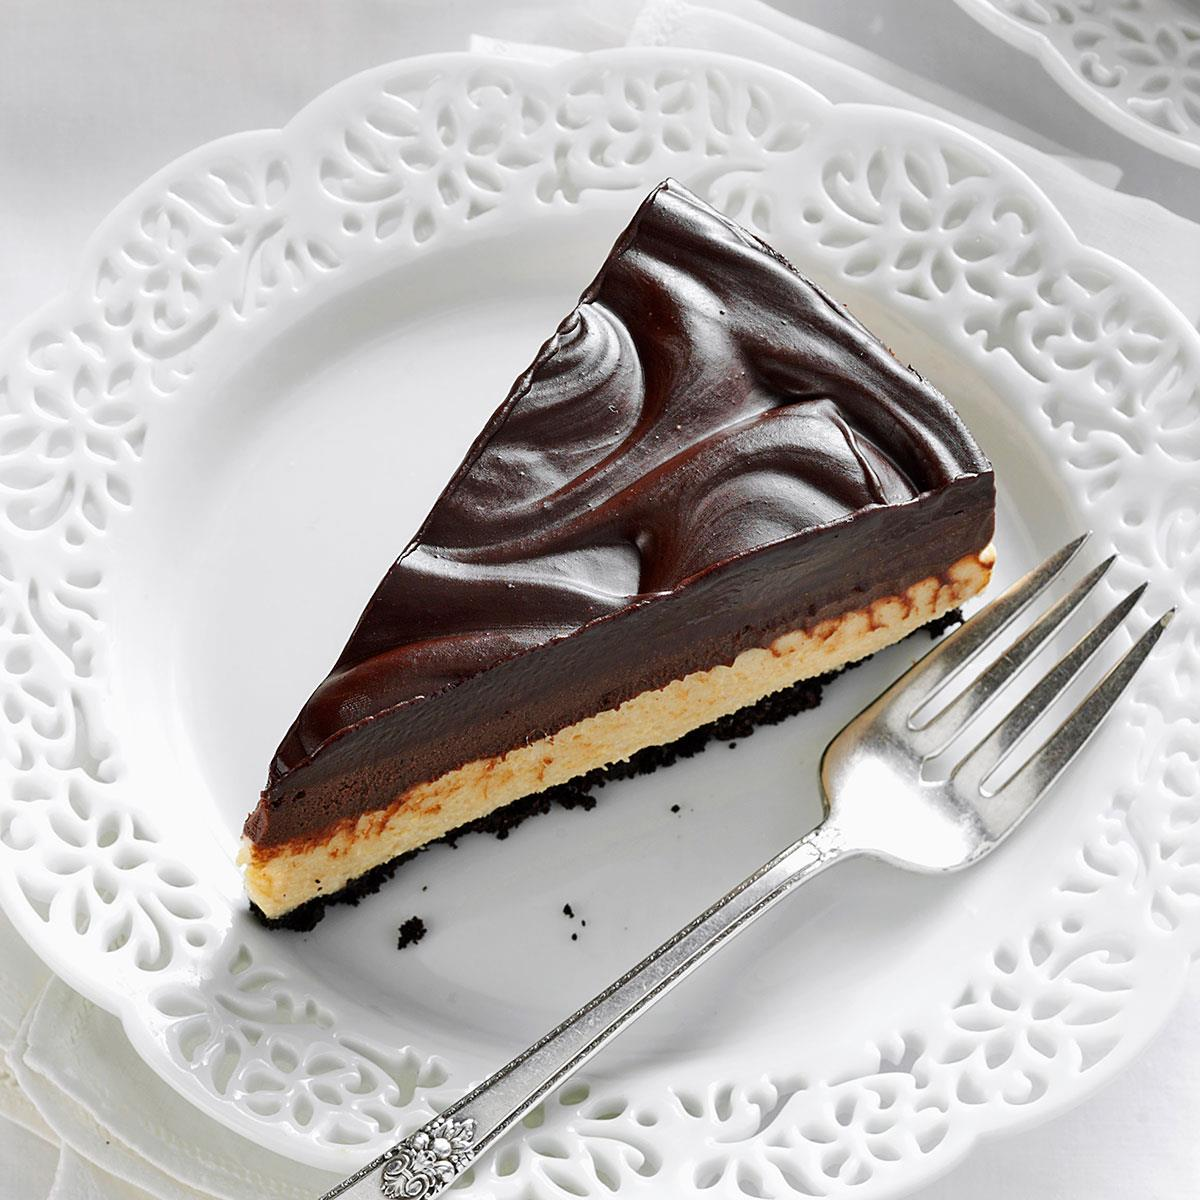 Chocolate Peanut Butter Mousse Cheesecake Recipe How To Make It Taste Of Home